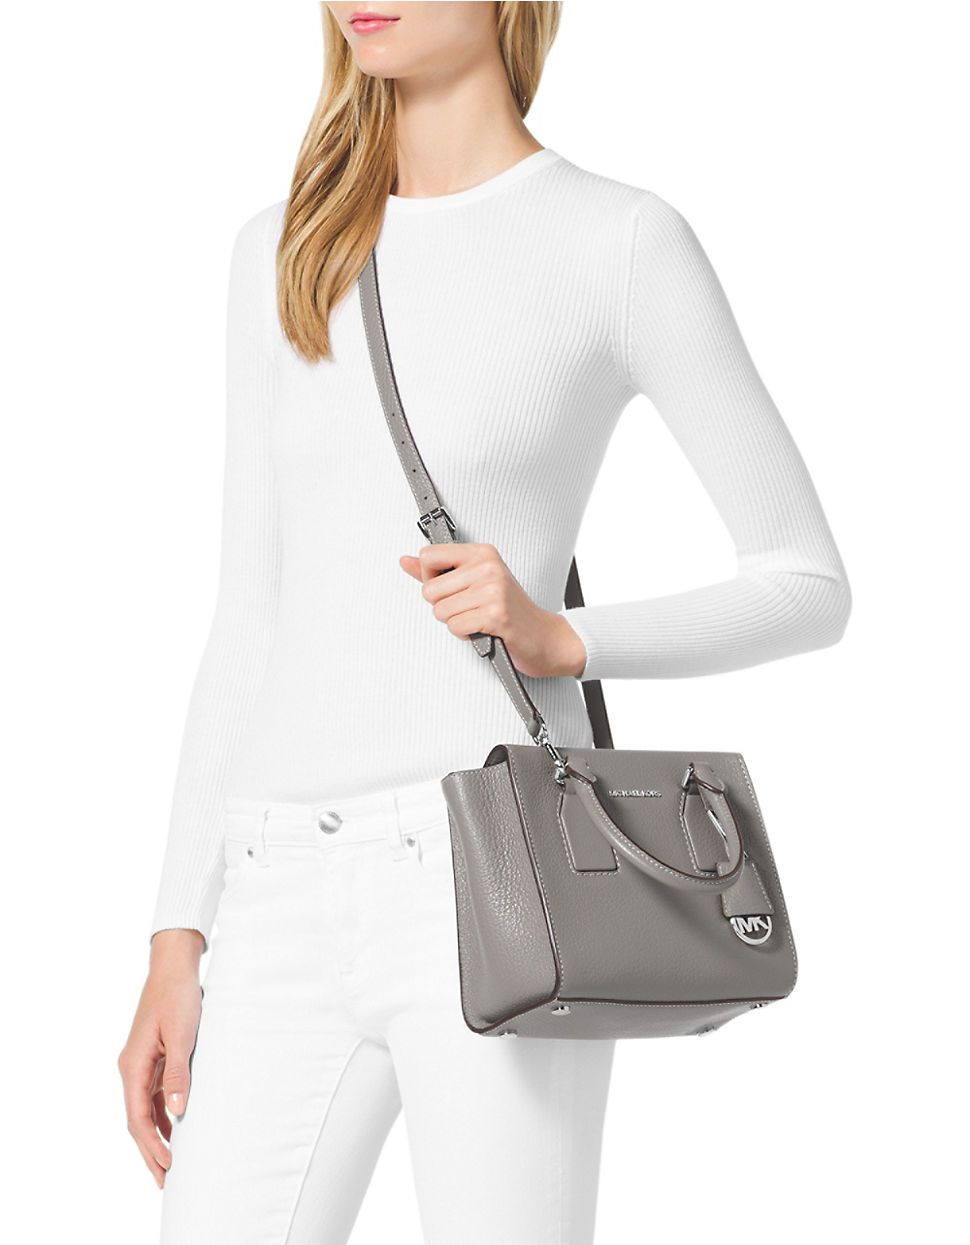 4f61f912e2175 Michael michael kors Selby Medium Leather Messenger Bag in White (Pearl  Grey)